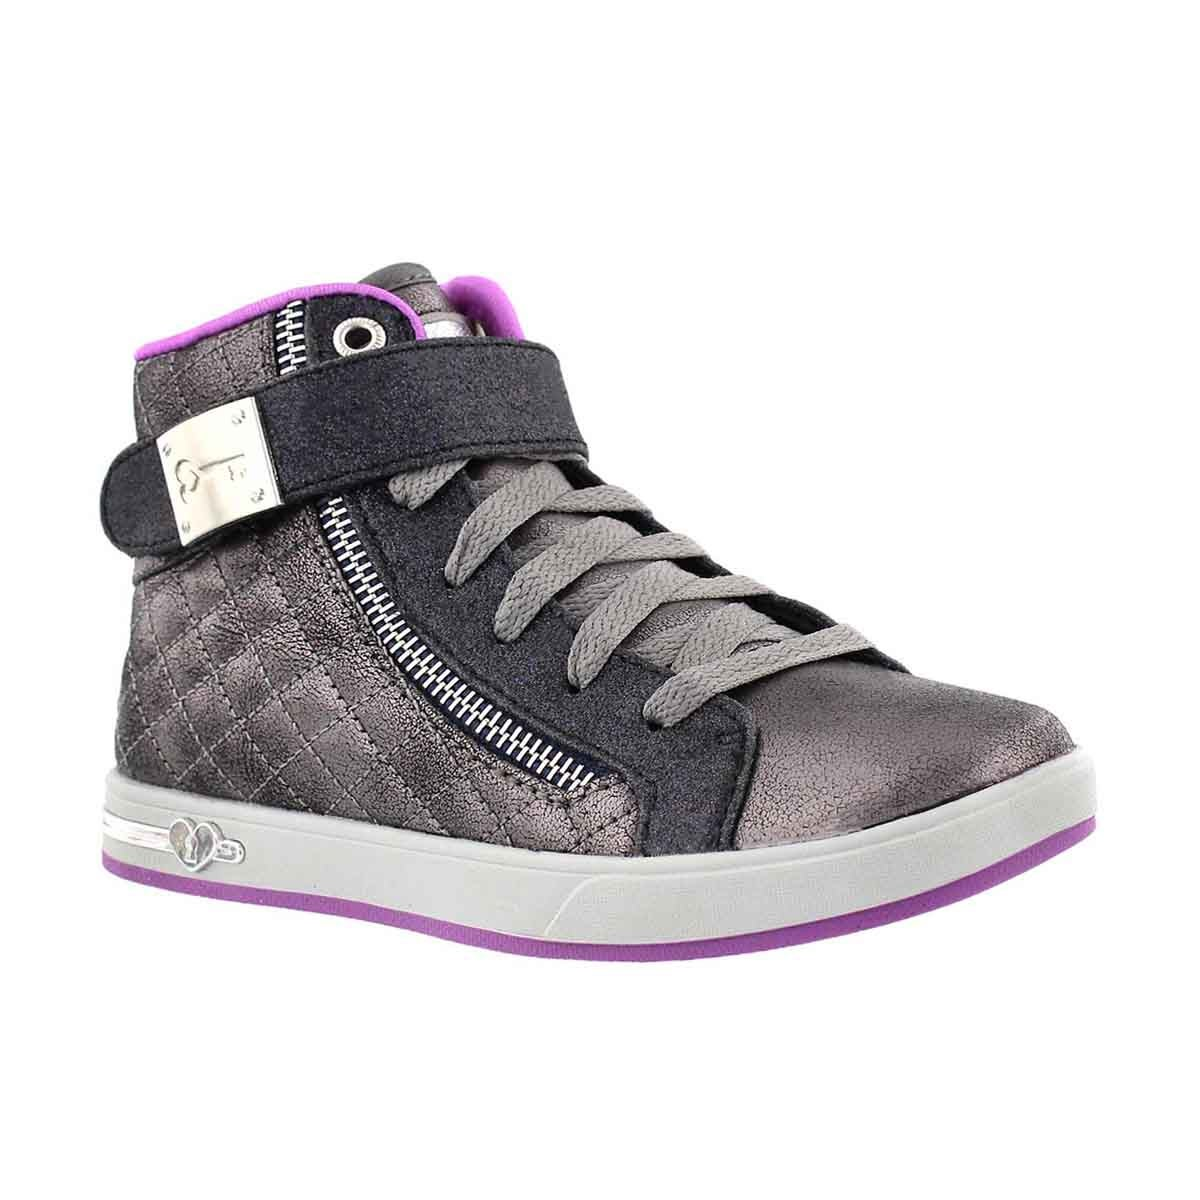 Girls' SHOUTOUT QUILTED CRUSH pewter high tops